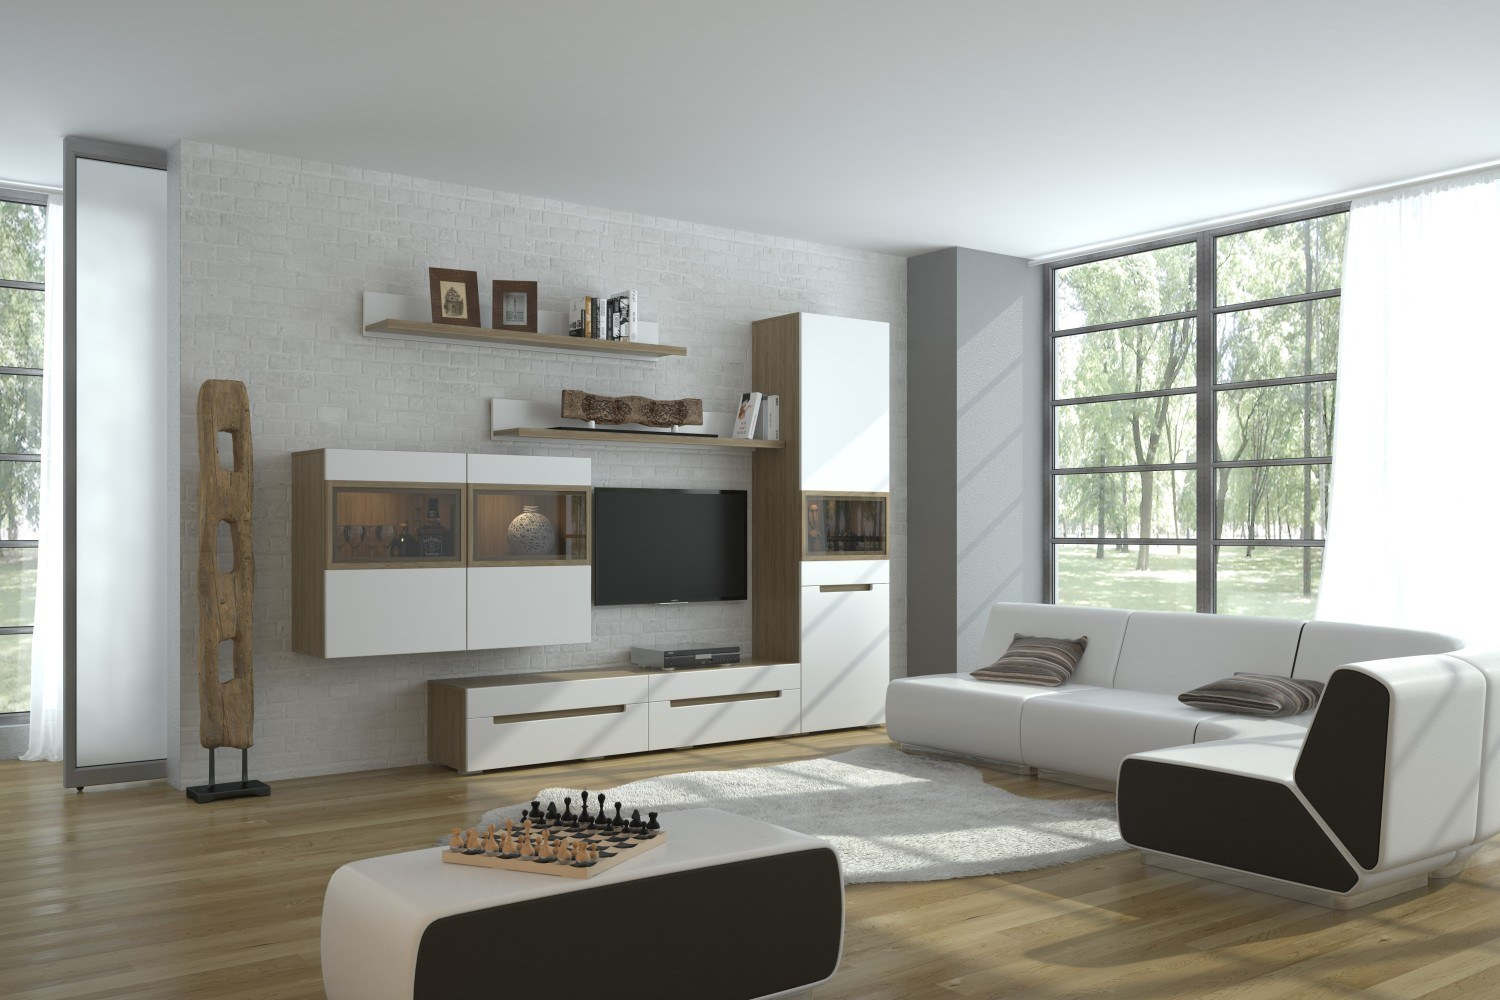 White matte walls and same colored furniture